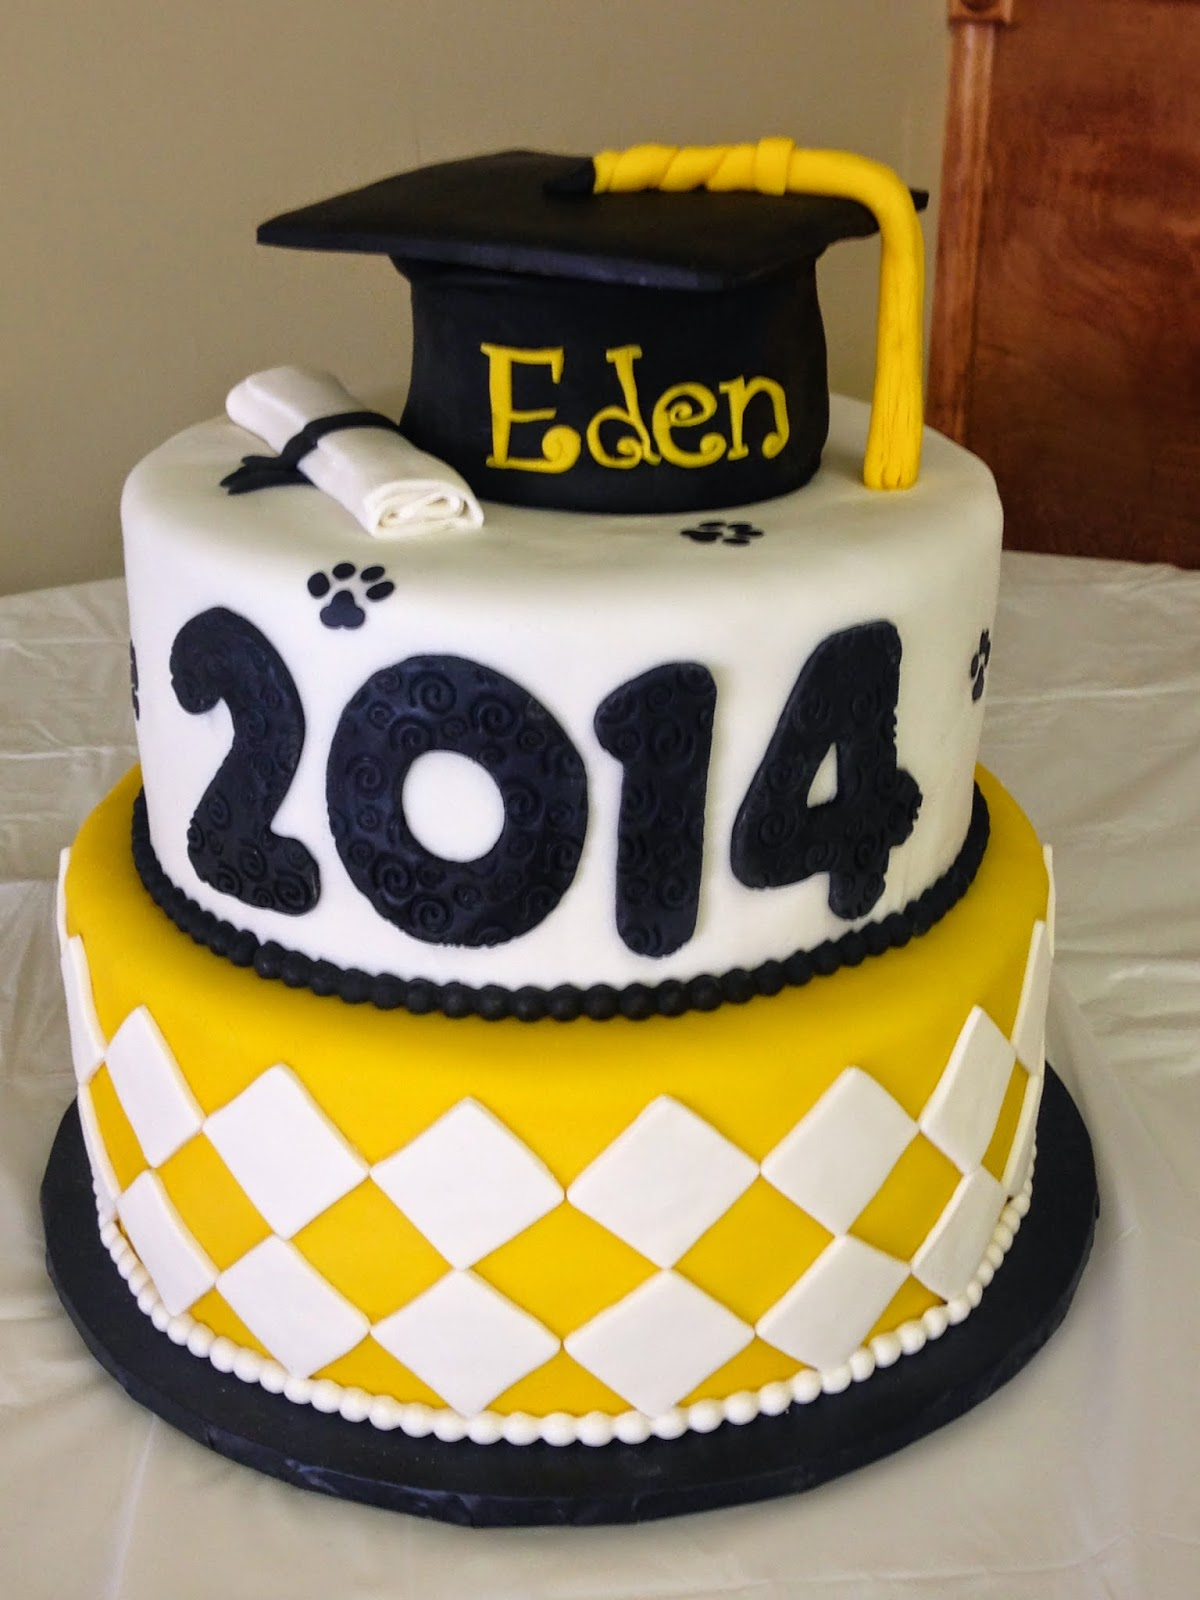 Cakes By Mindy Black And Yellow Graduation Cake 10 12